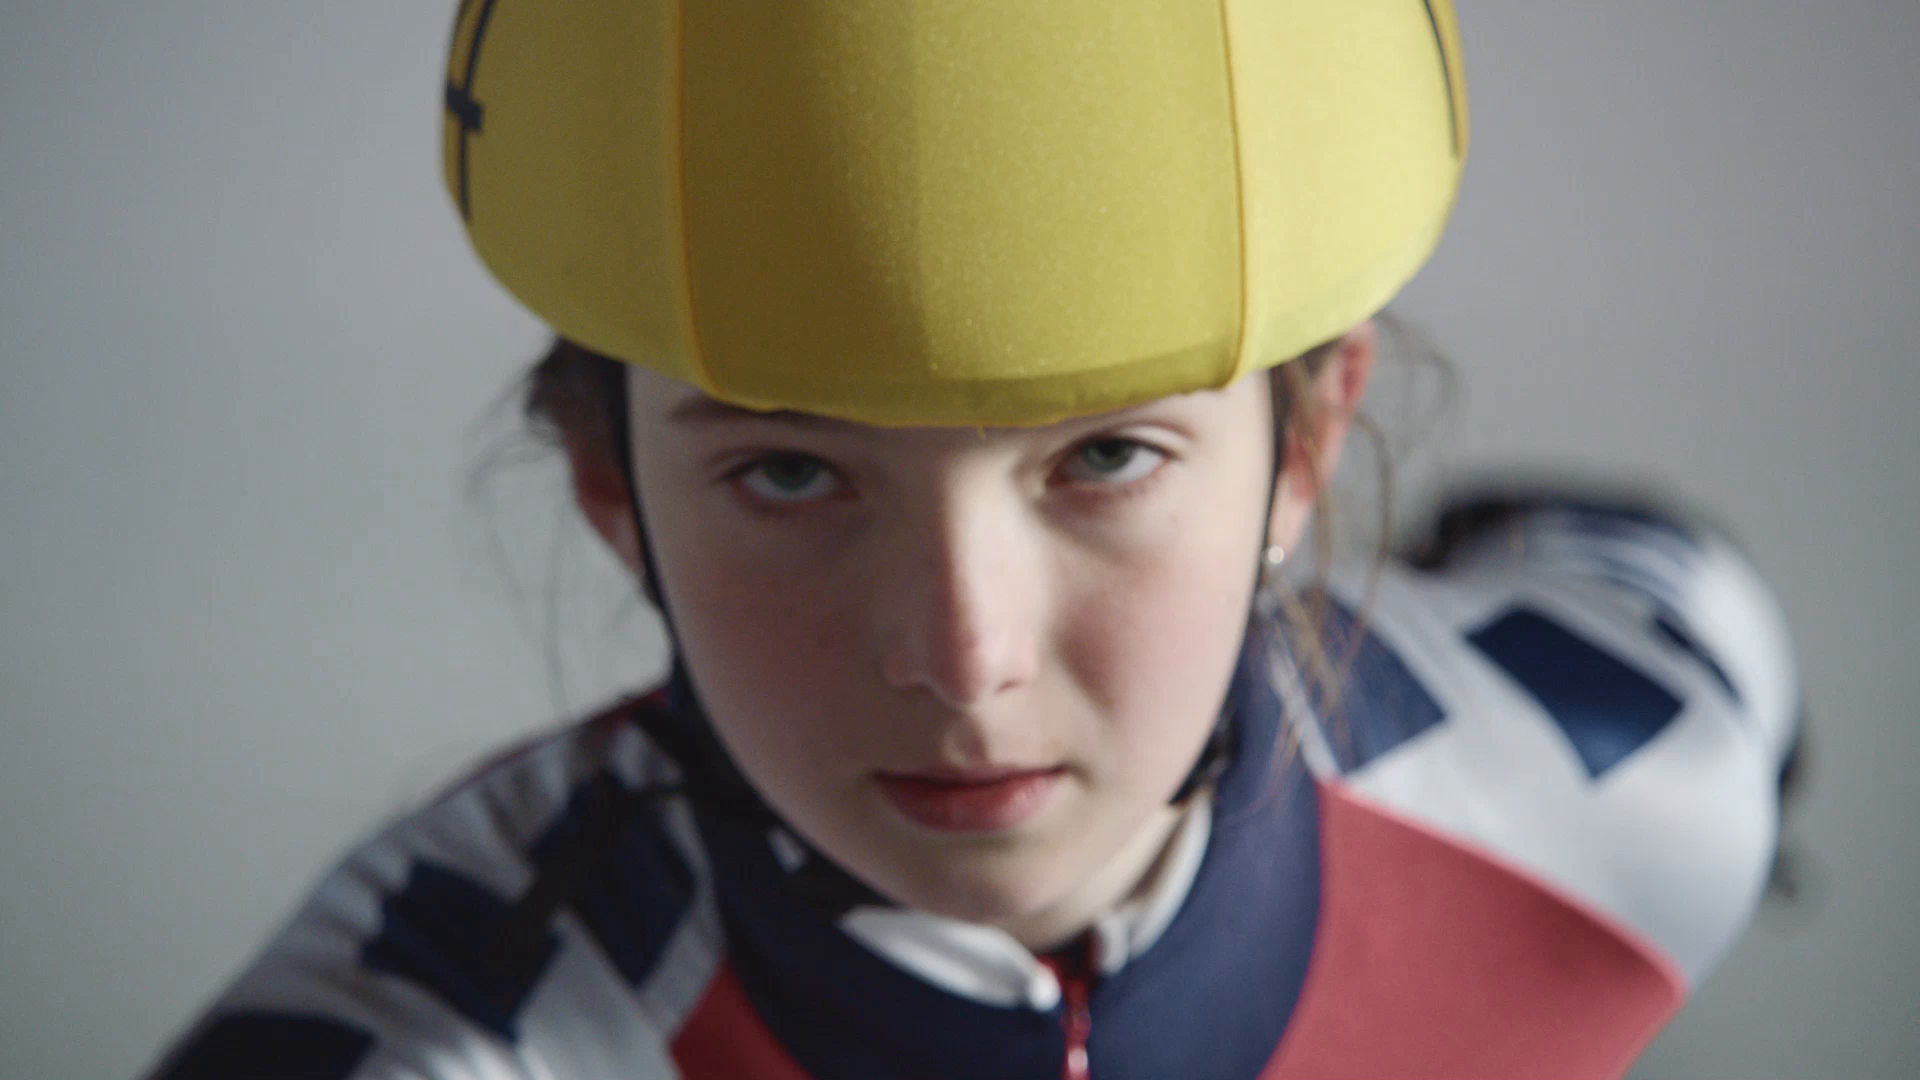 Thumbnail for Samsung - #TheOnlyWayToKnow - Lillehammer 2016 Youth Olympic Games